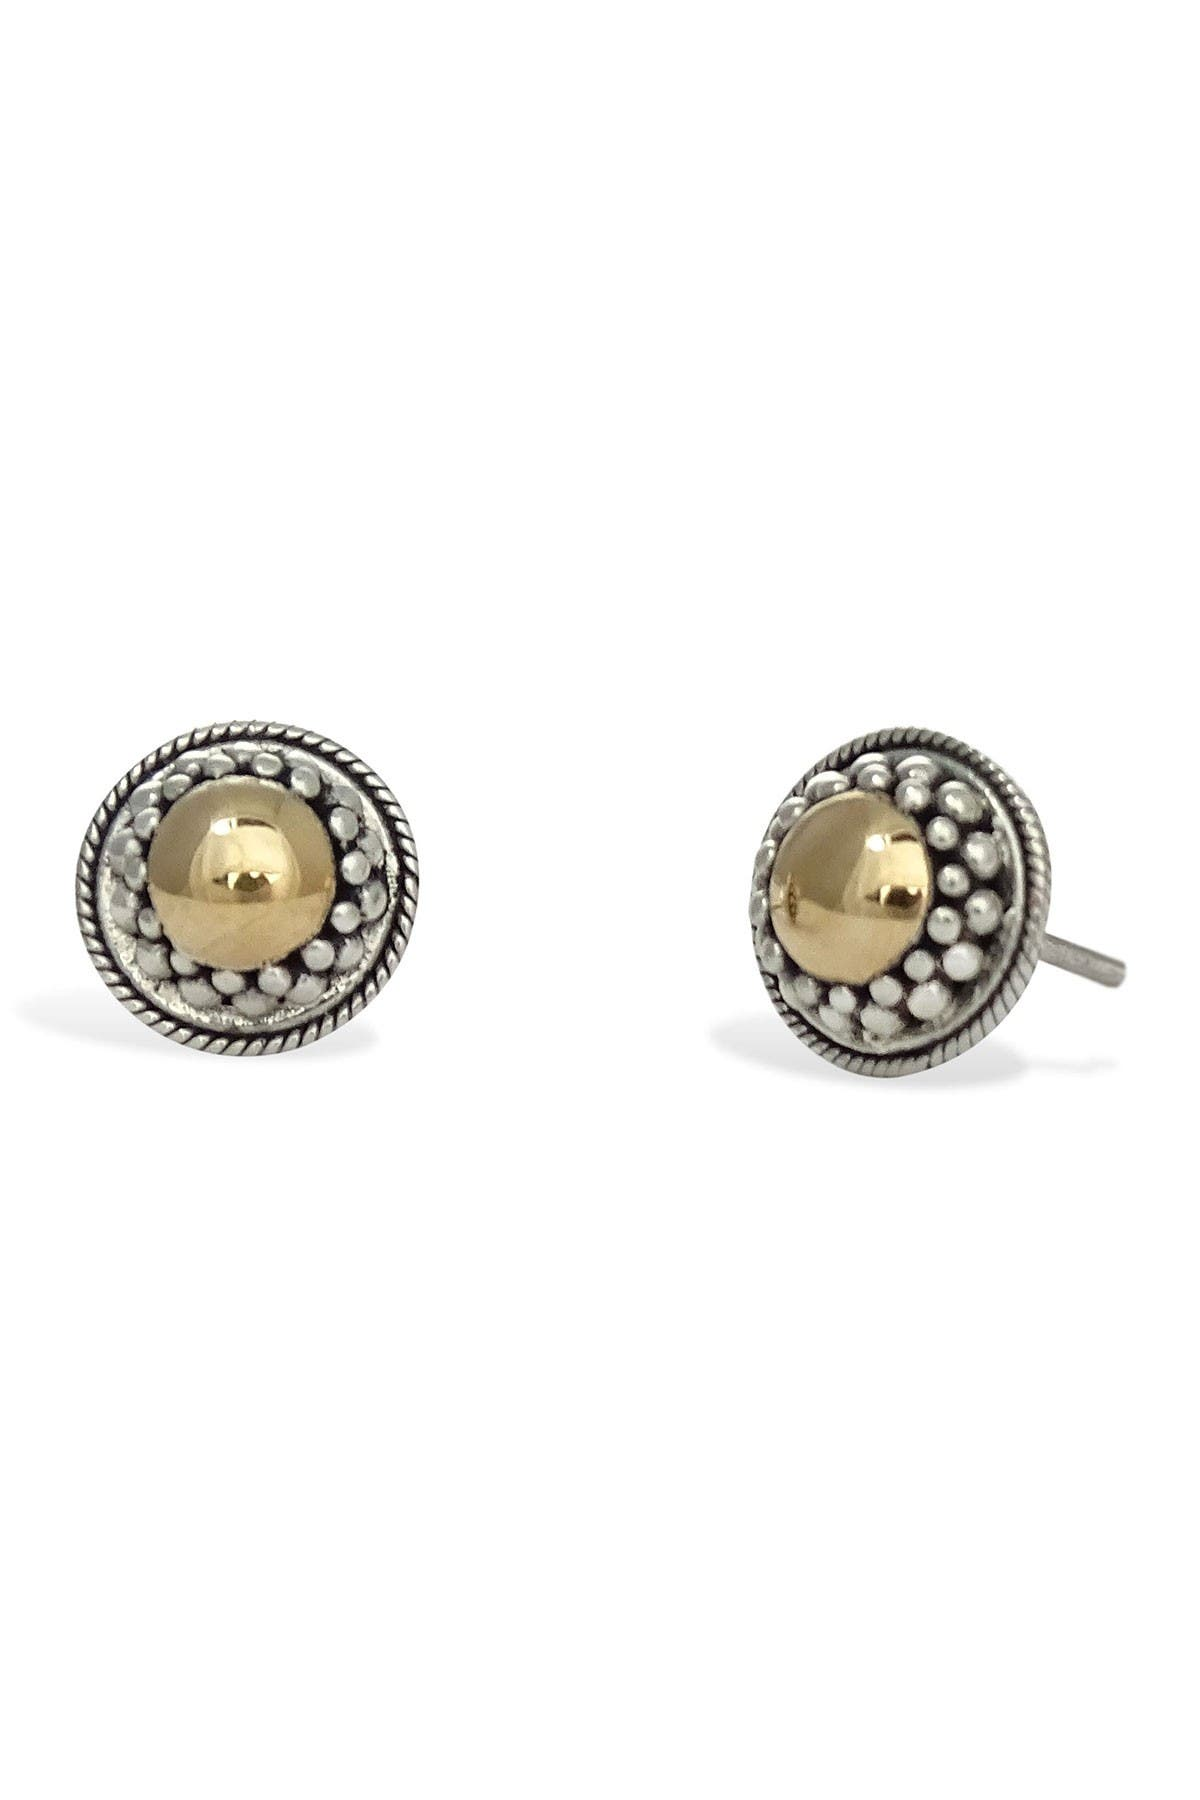 Image of Savvy Cie 18K Yellow Gold & Sterling Silver Halo Stud Earrings